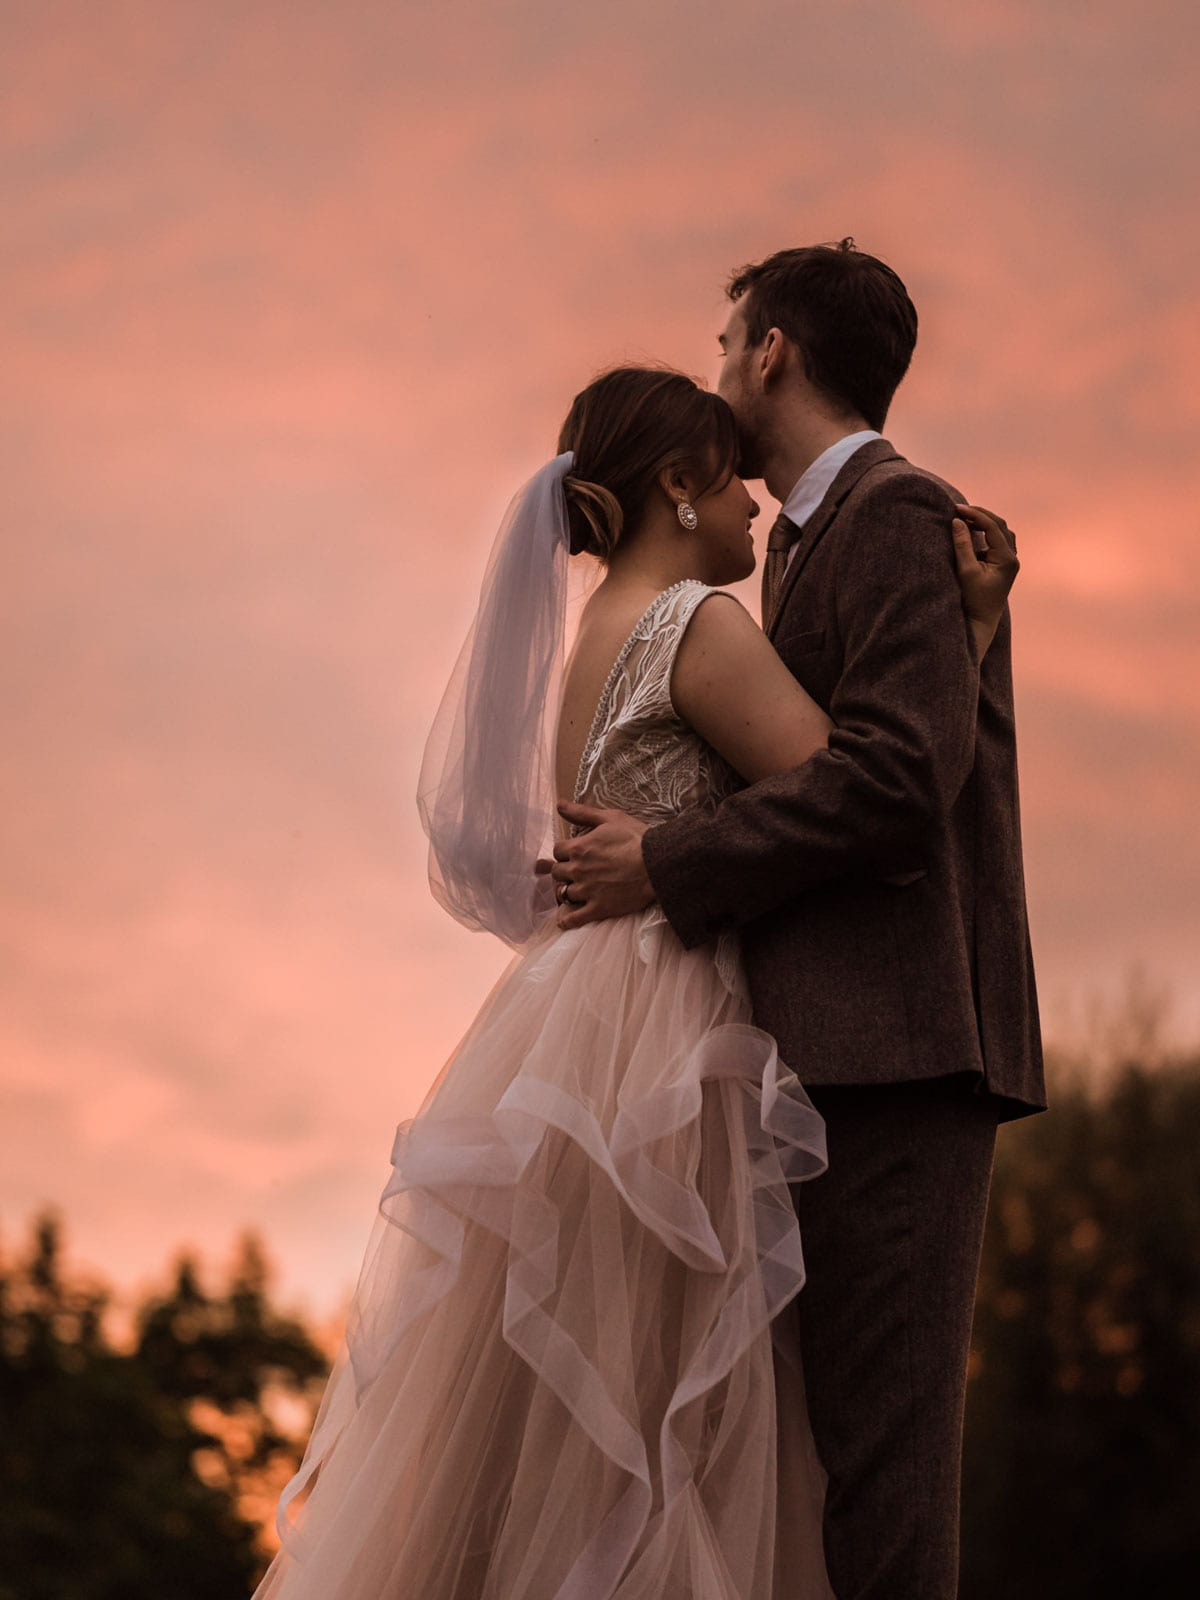 Golden hour photoshoot, sunset wedding photoshoot, bride and groom hugging each other